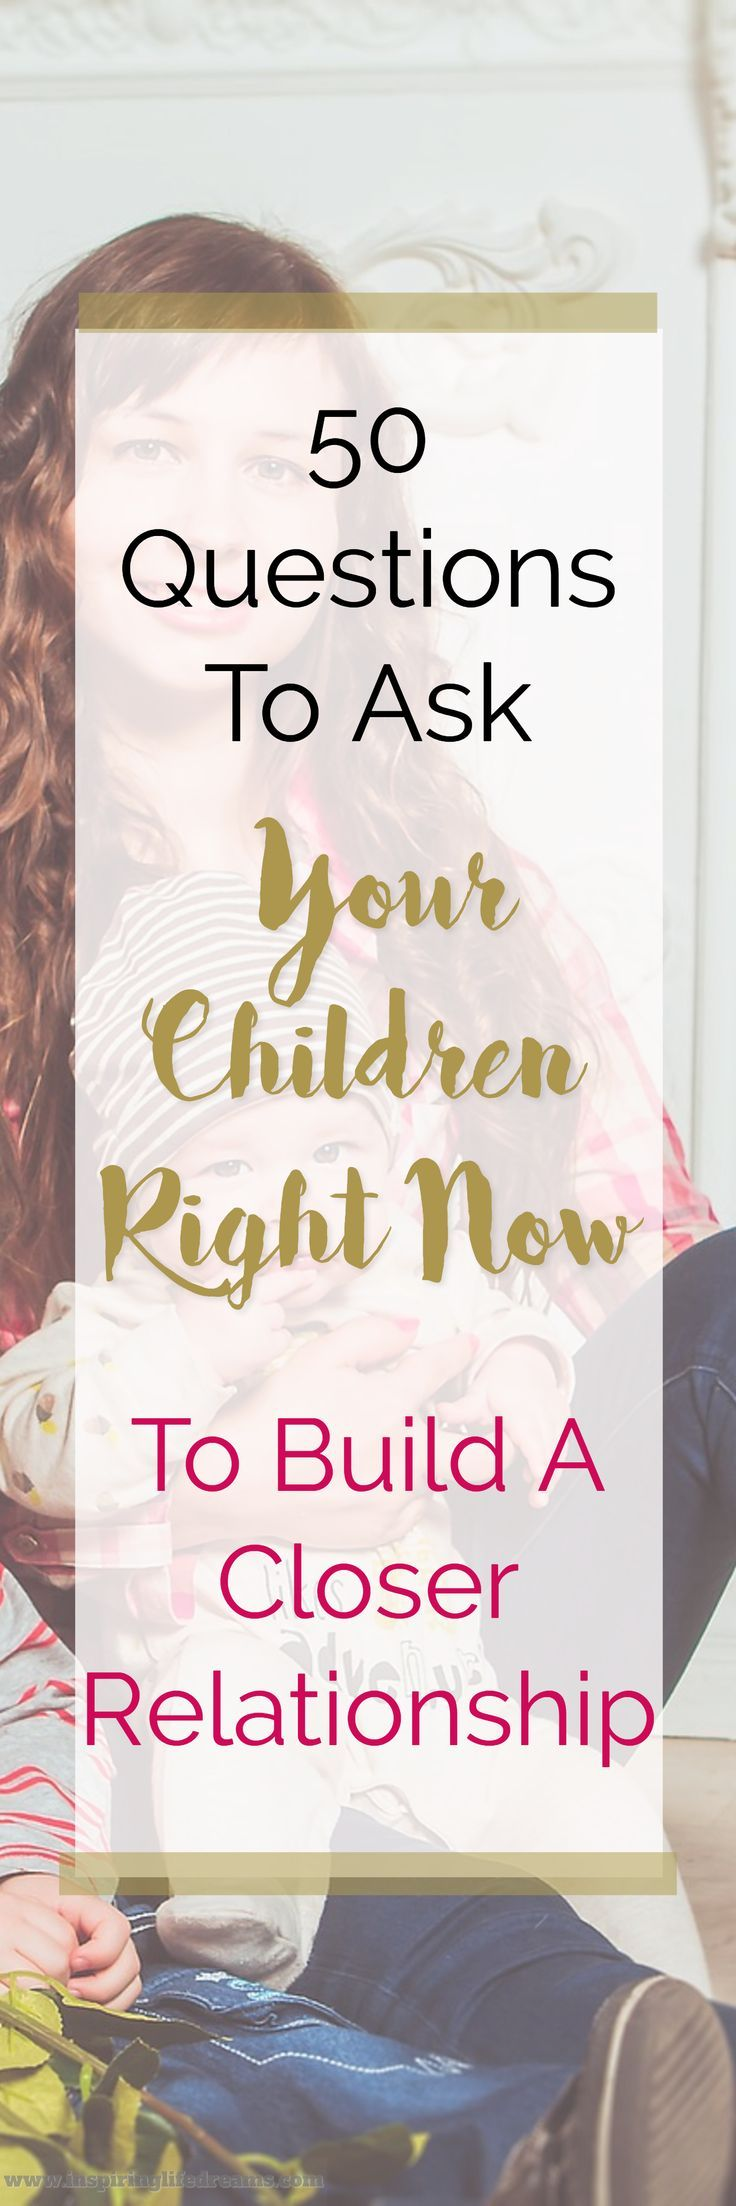 50 Questions to ask your children. Nurture your kids. Parenting advice and tips. Raising great boys and girls.  Parenting   Motherhood   Fatherhood   Parenthood   Mommyhood   Gentle Parenting   Tips & Advice   Childhood